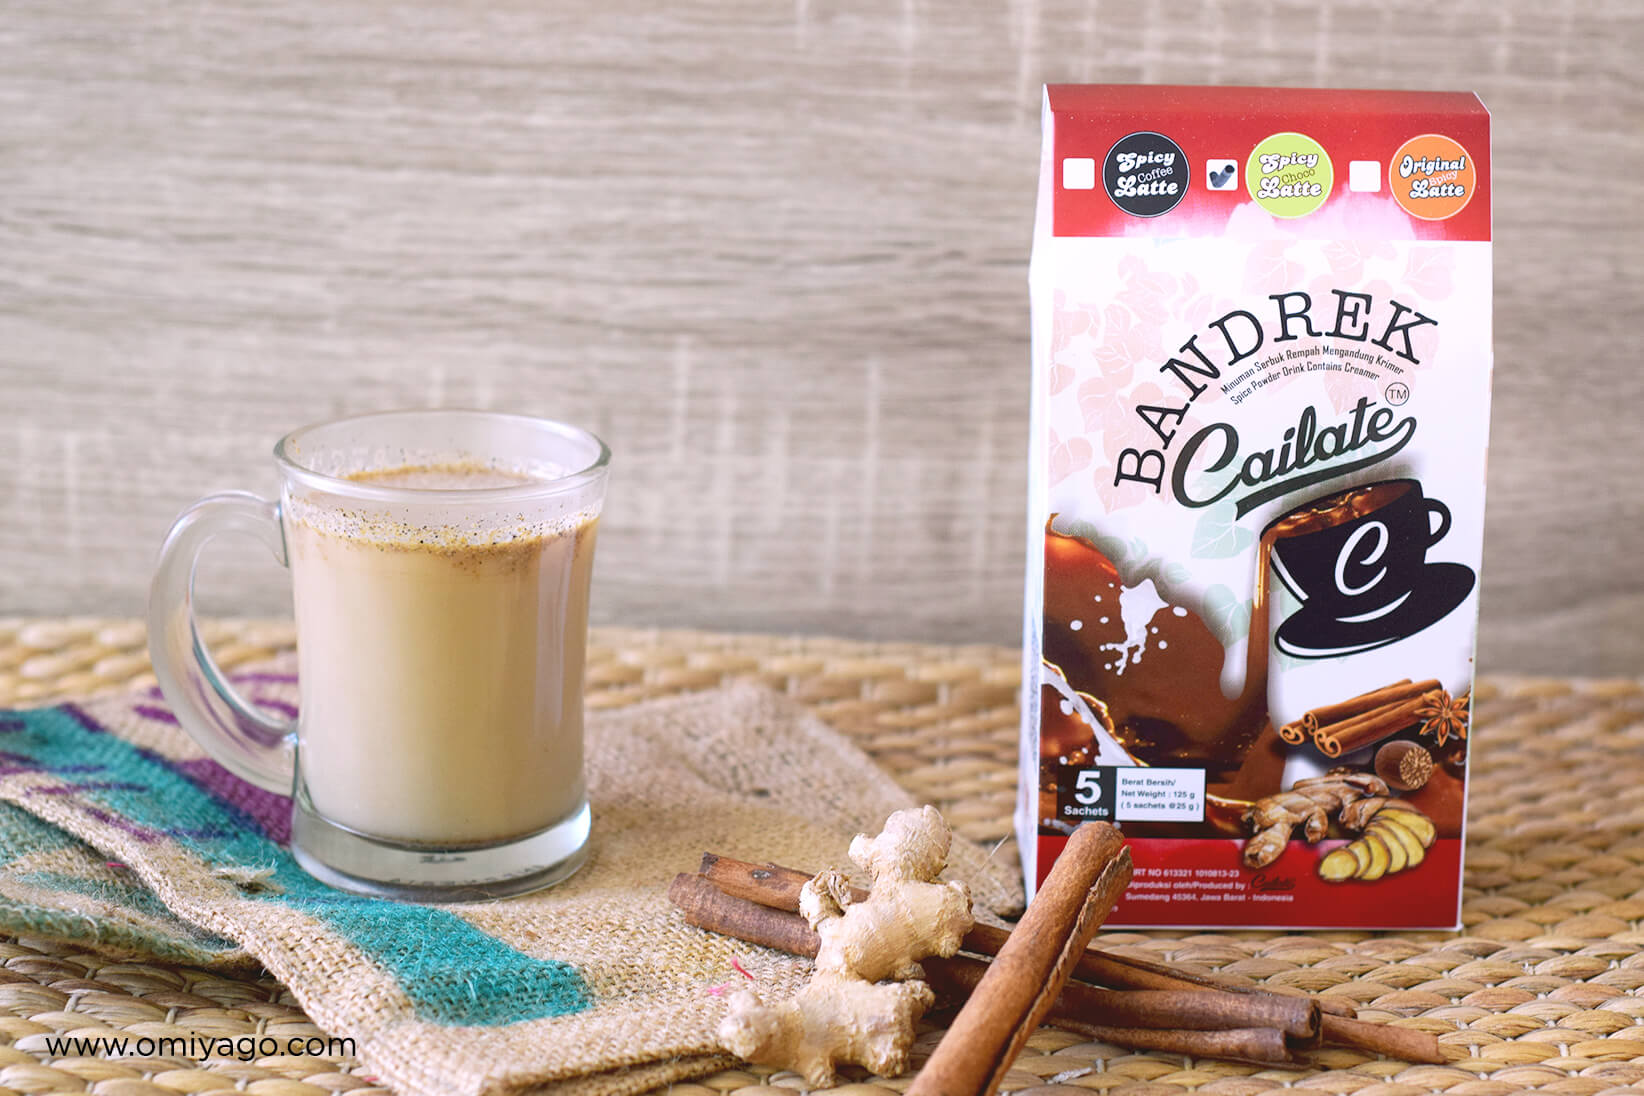 Bandrek Cailate Choco Spicy Latte